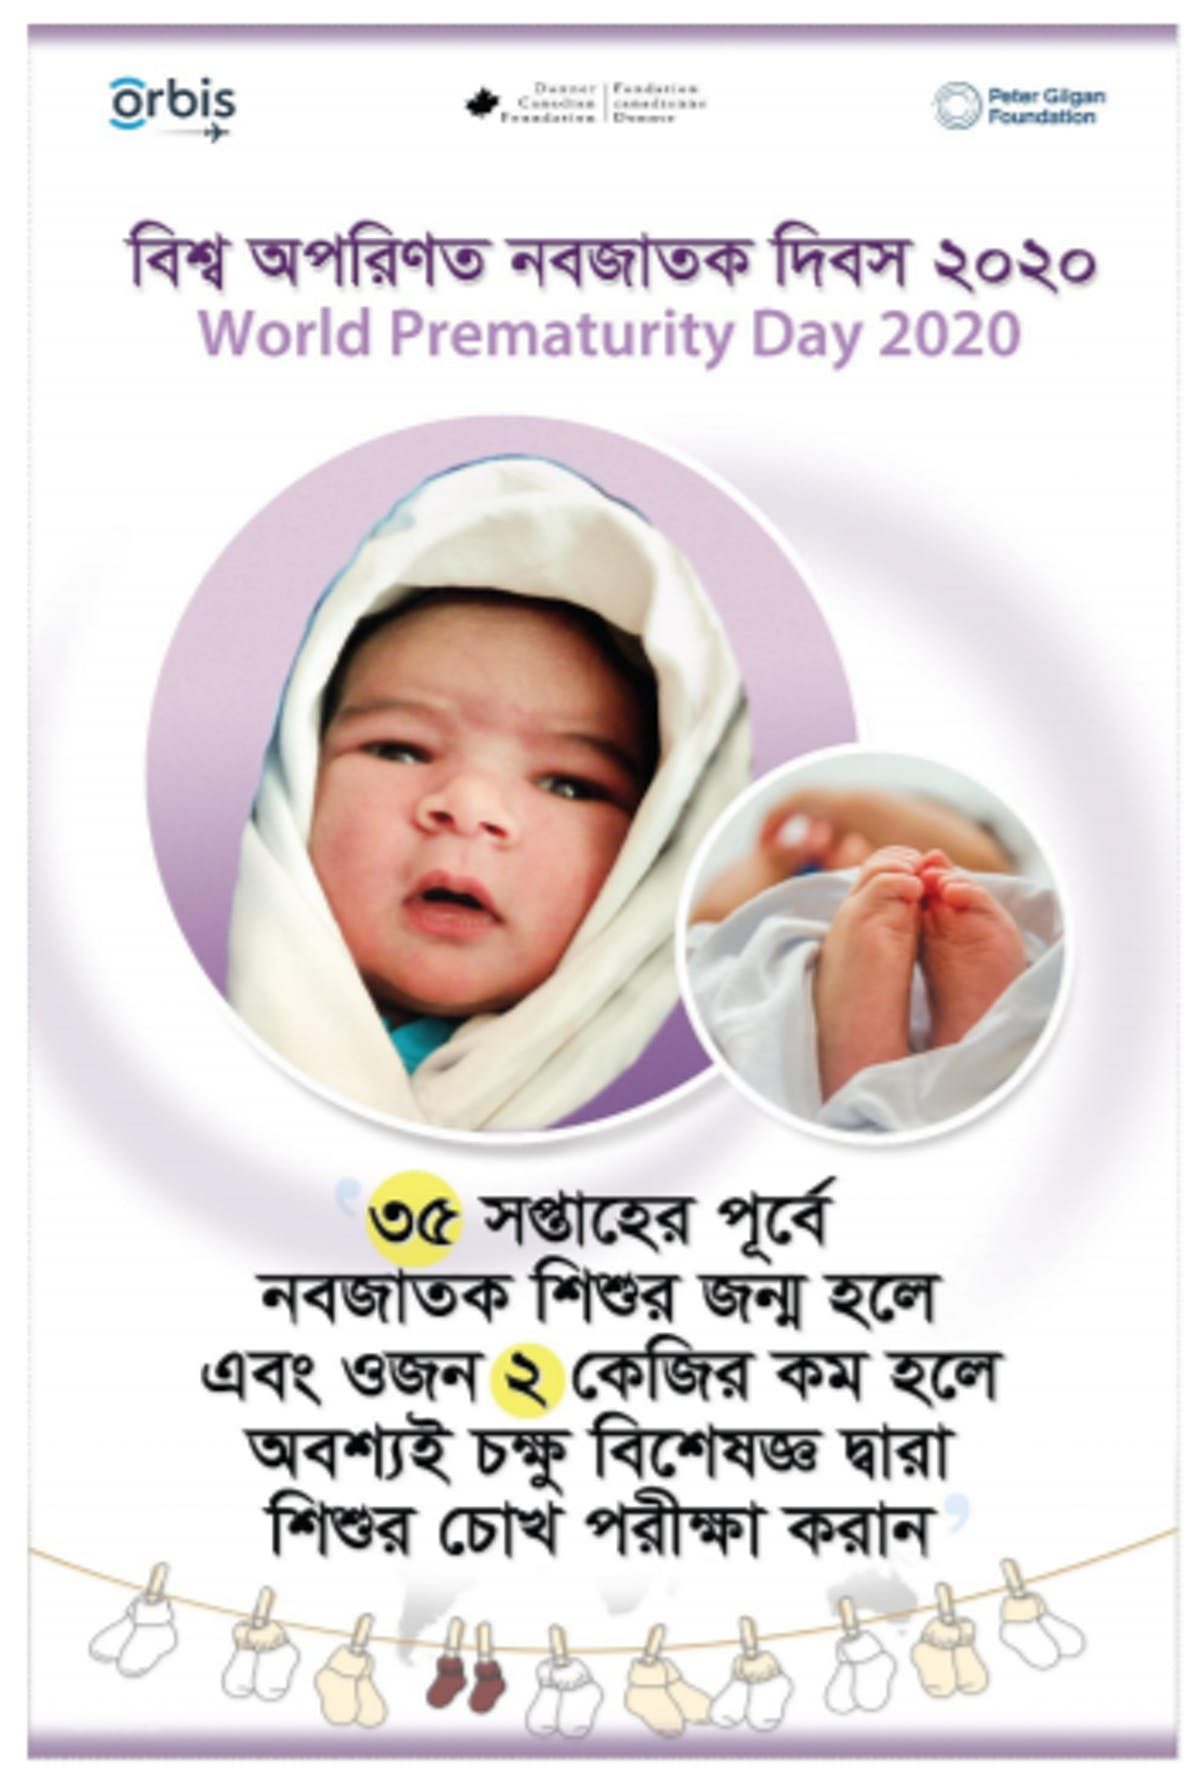 Orbis poster highlighting ROP for World Prematurity Day